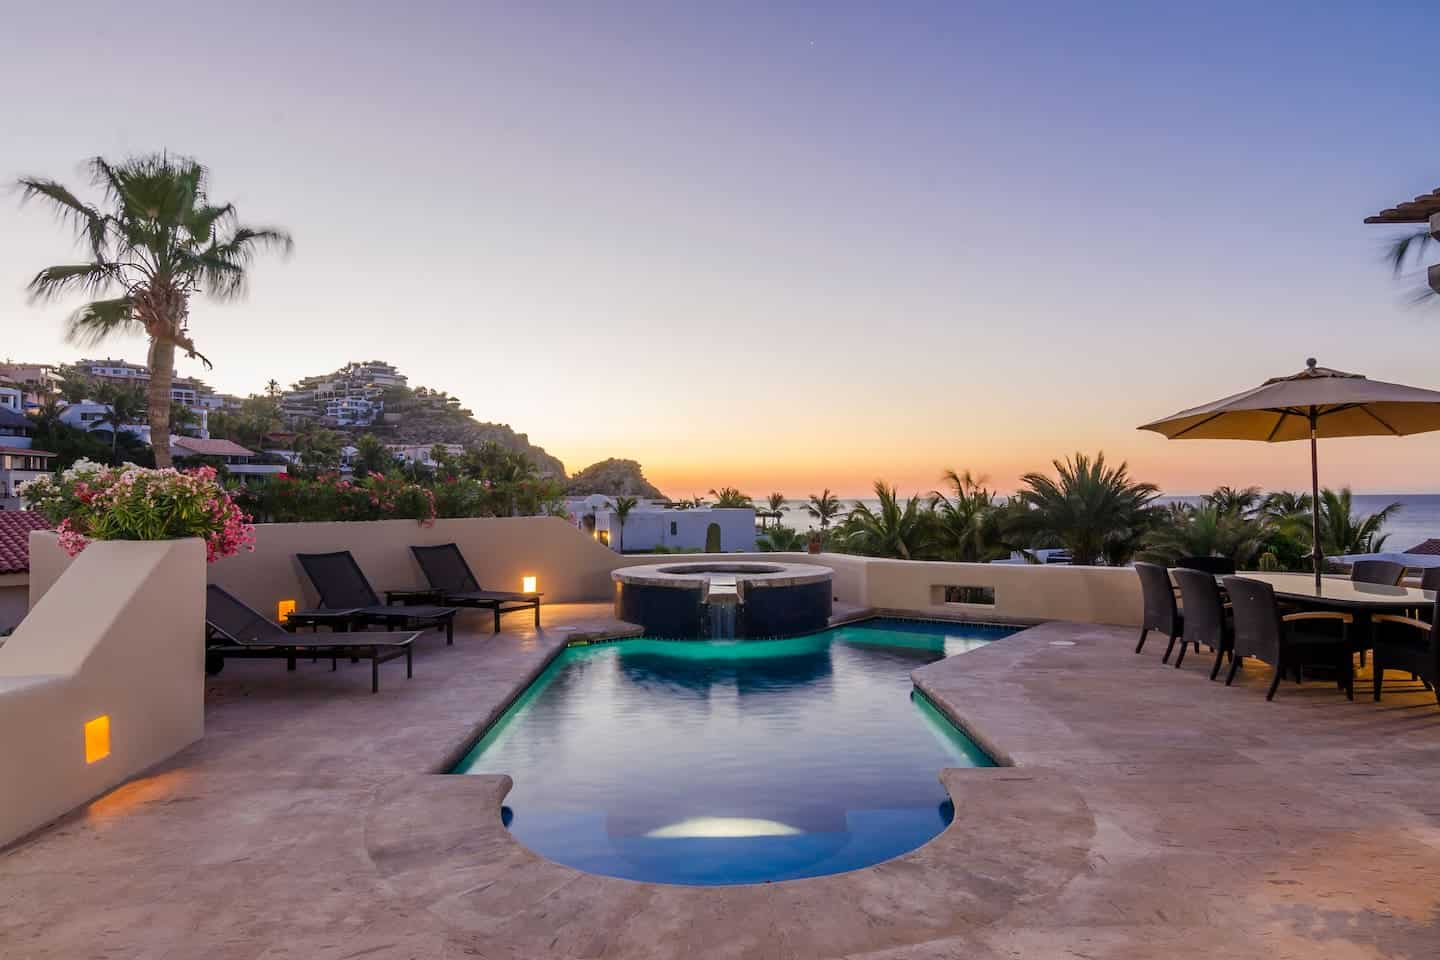 Image of Airbnb rental in Cabo San Lucas, Mexico